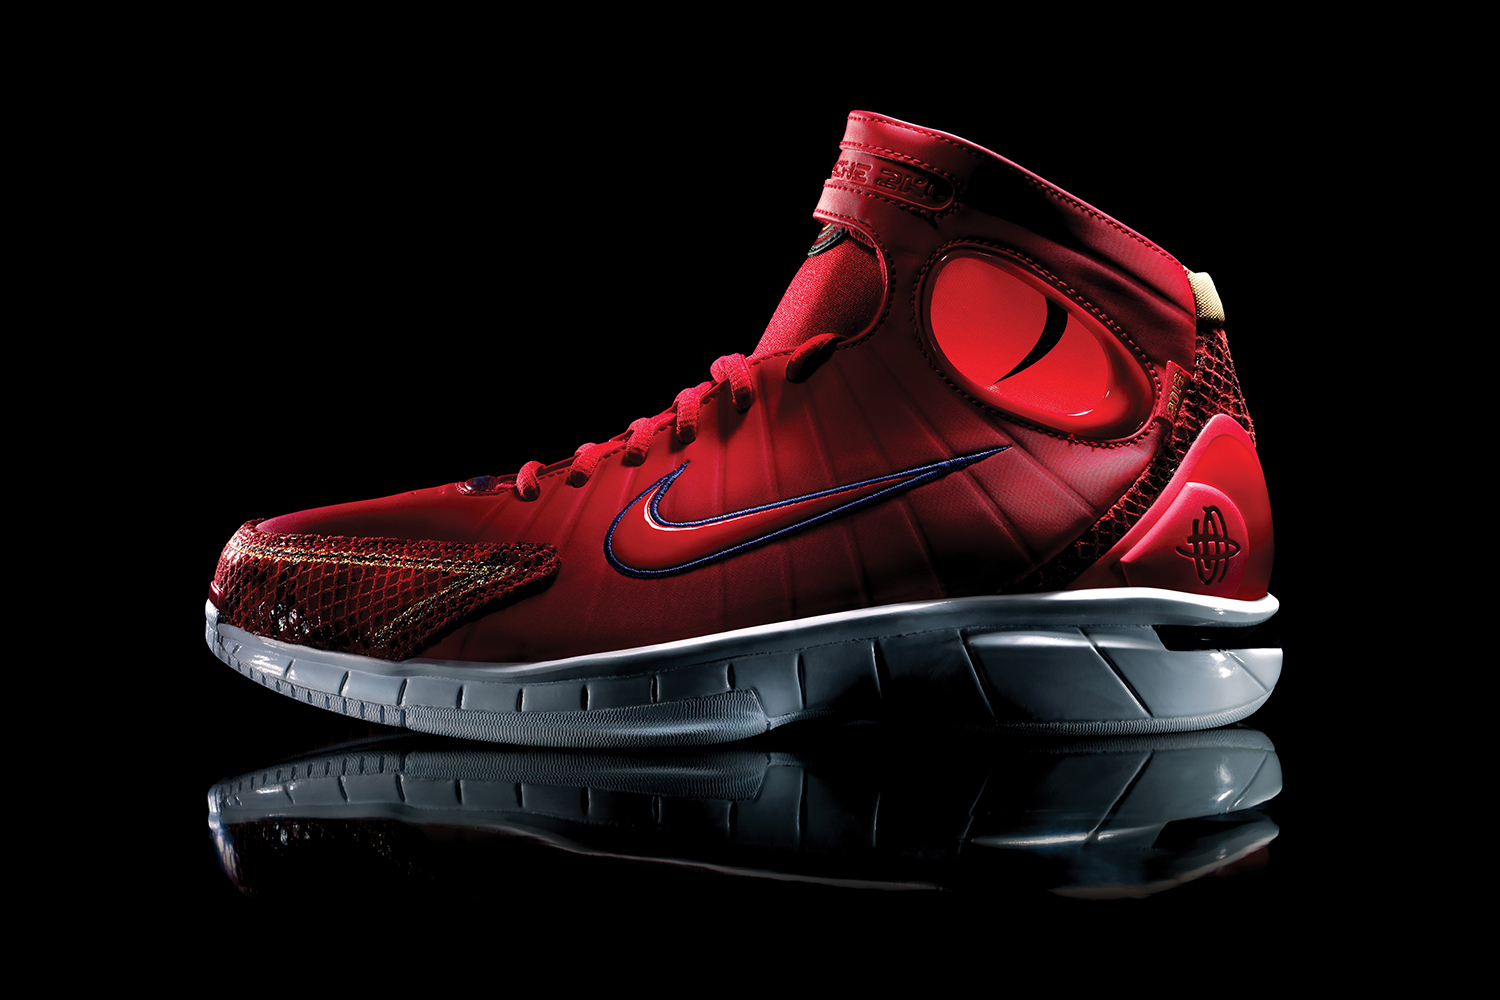 """Nike Basketball Release """"Year of the Snake"""" Versions of the Kobe 8 System and Air Zoom Huarache 2K4"""